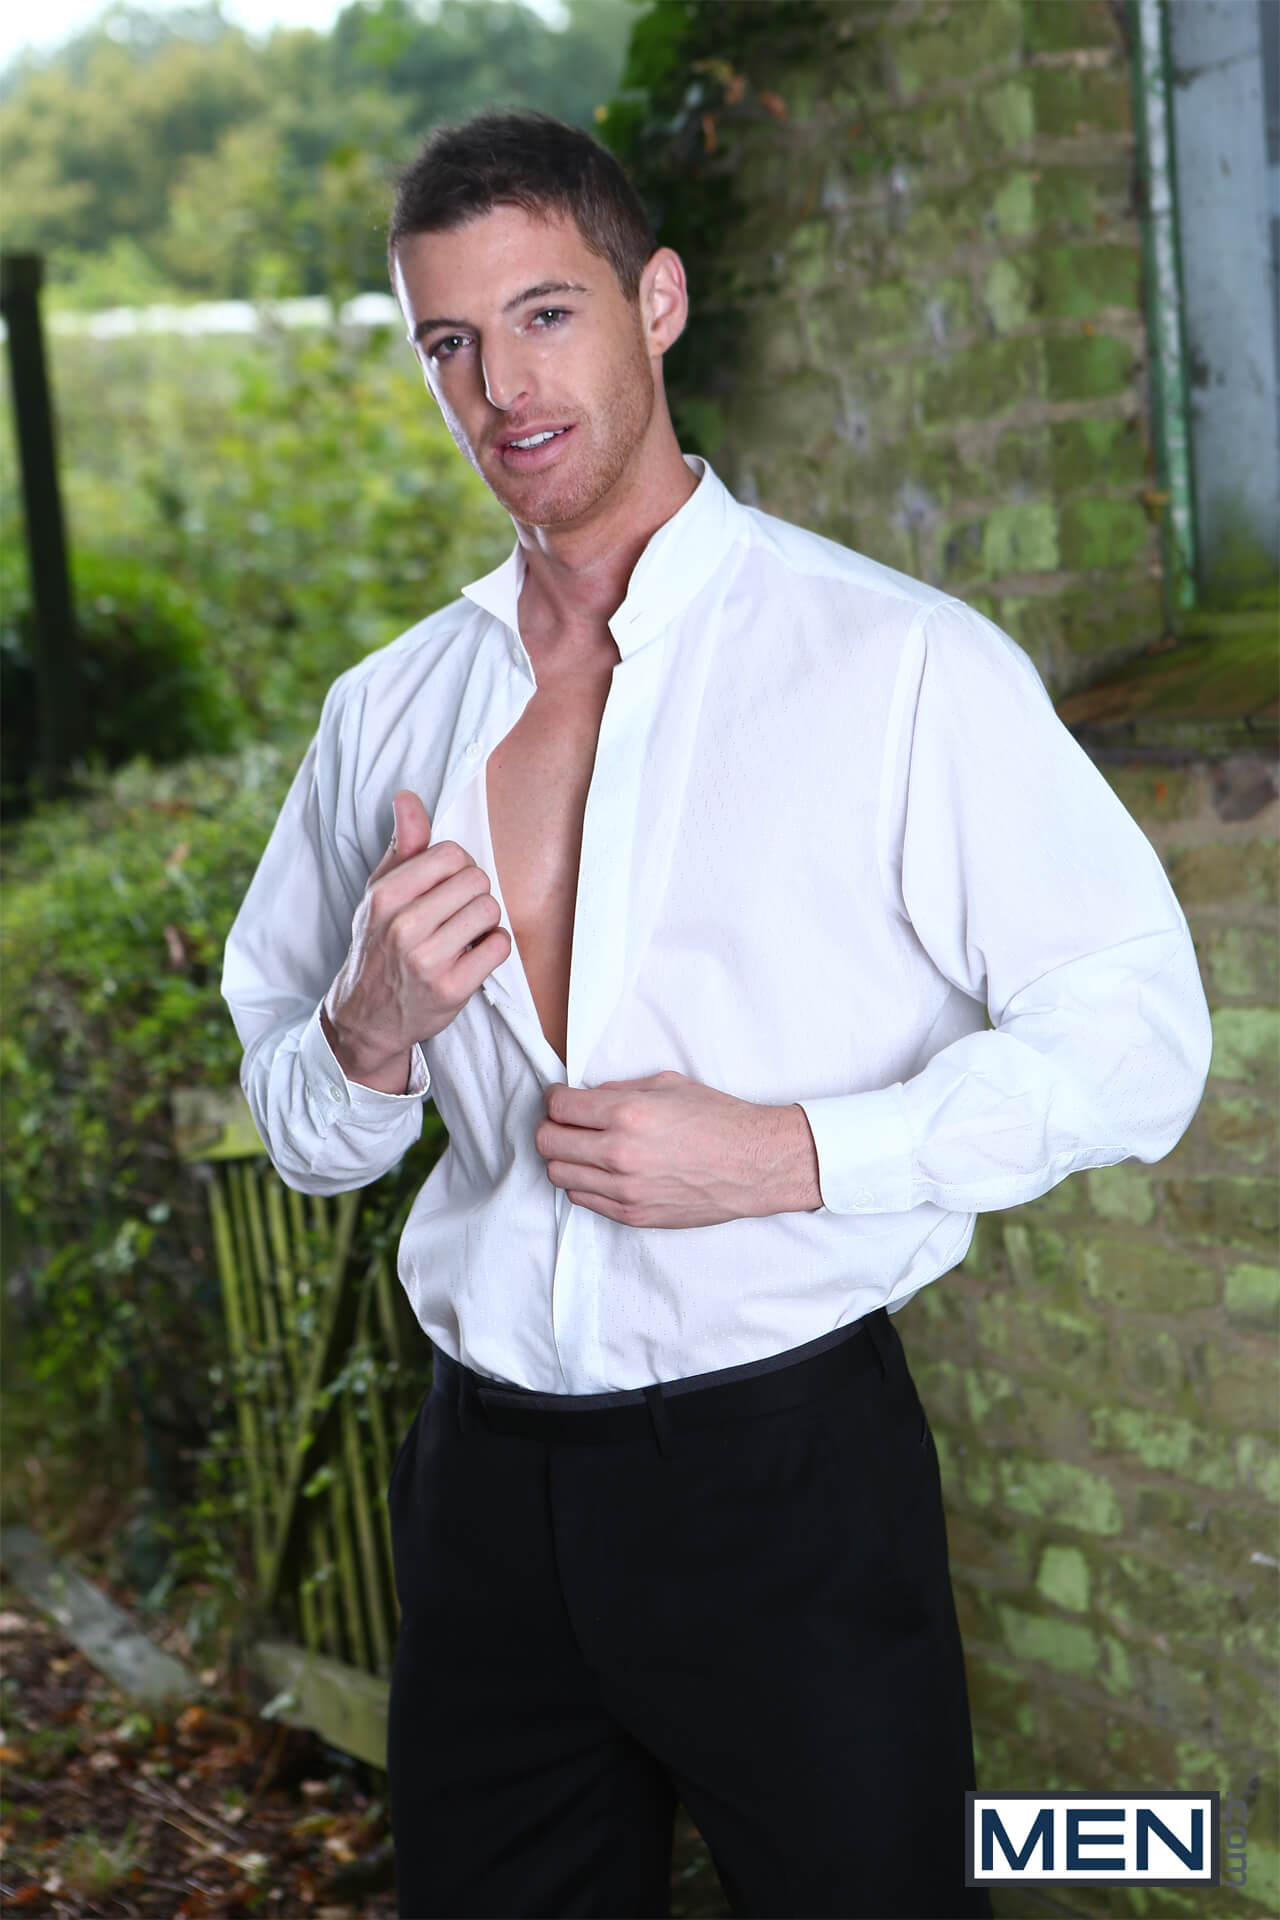 men men of uk the abbey part 3 jace tyler paddy obrian gay porn blog image 6